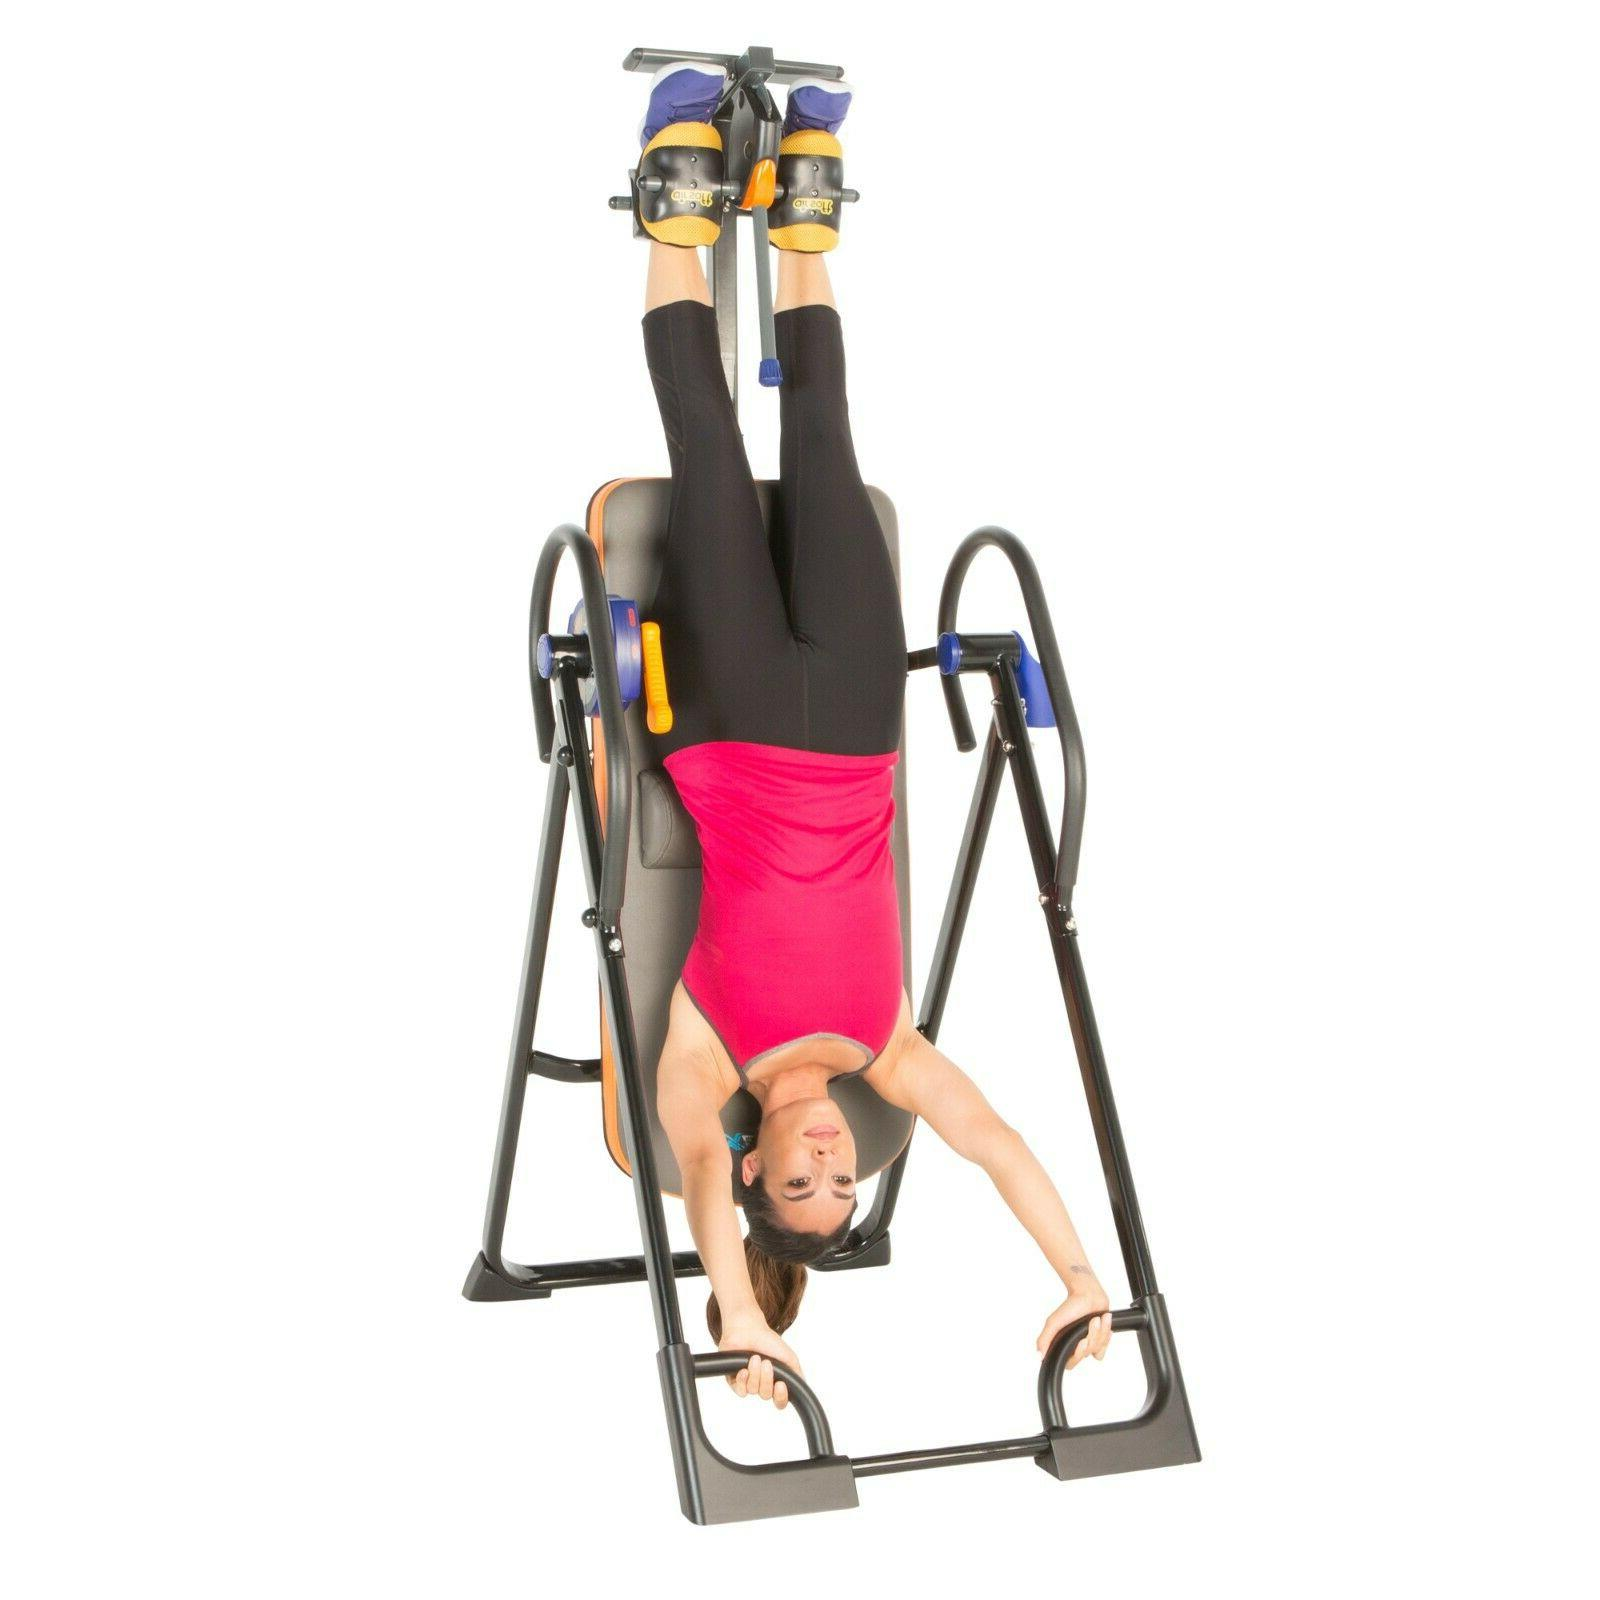 EXERPEUTIC Inversion Table Therapy Duty Pain